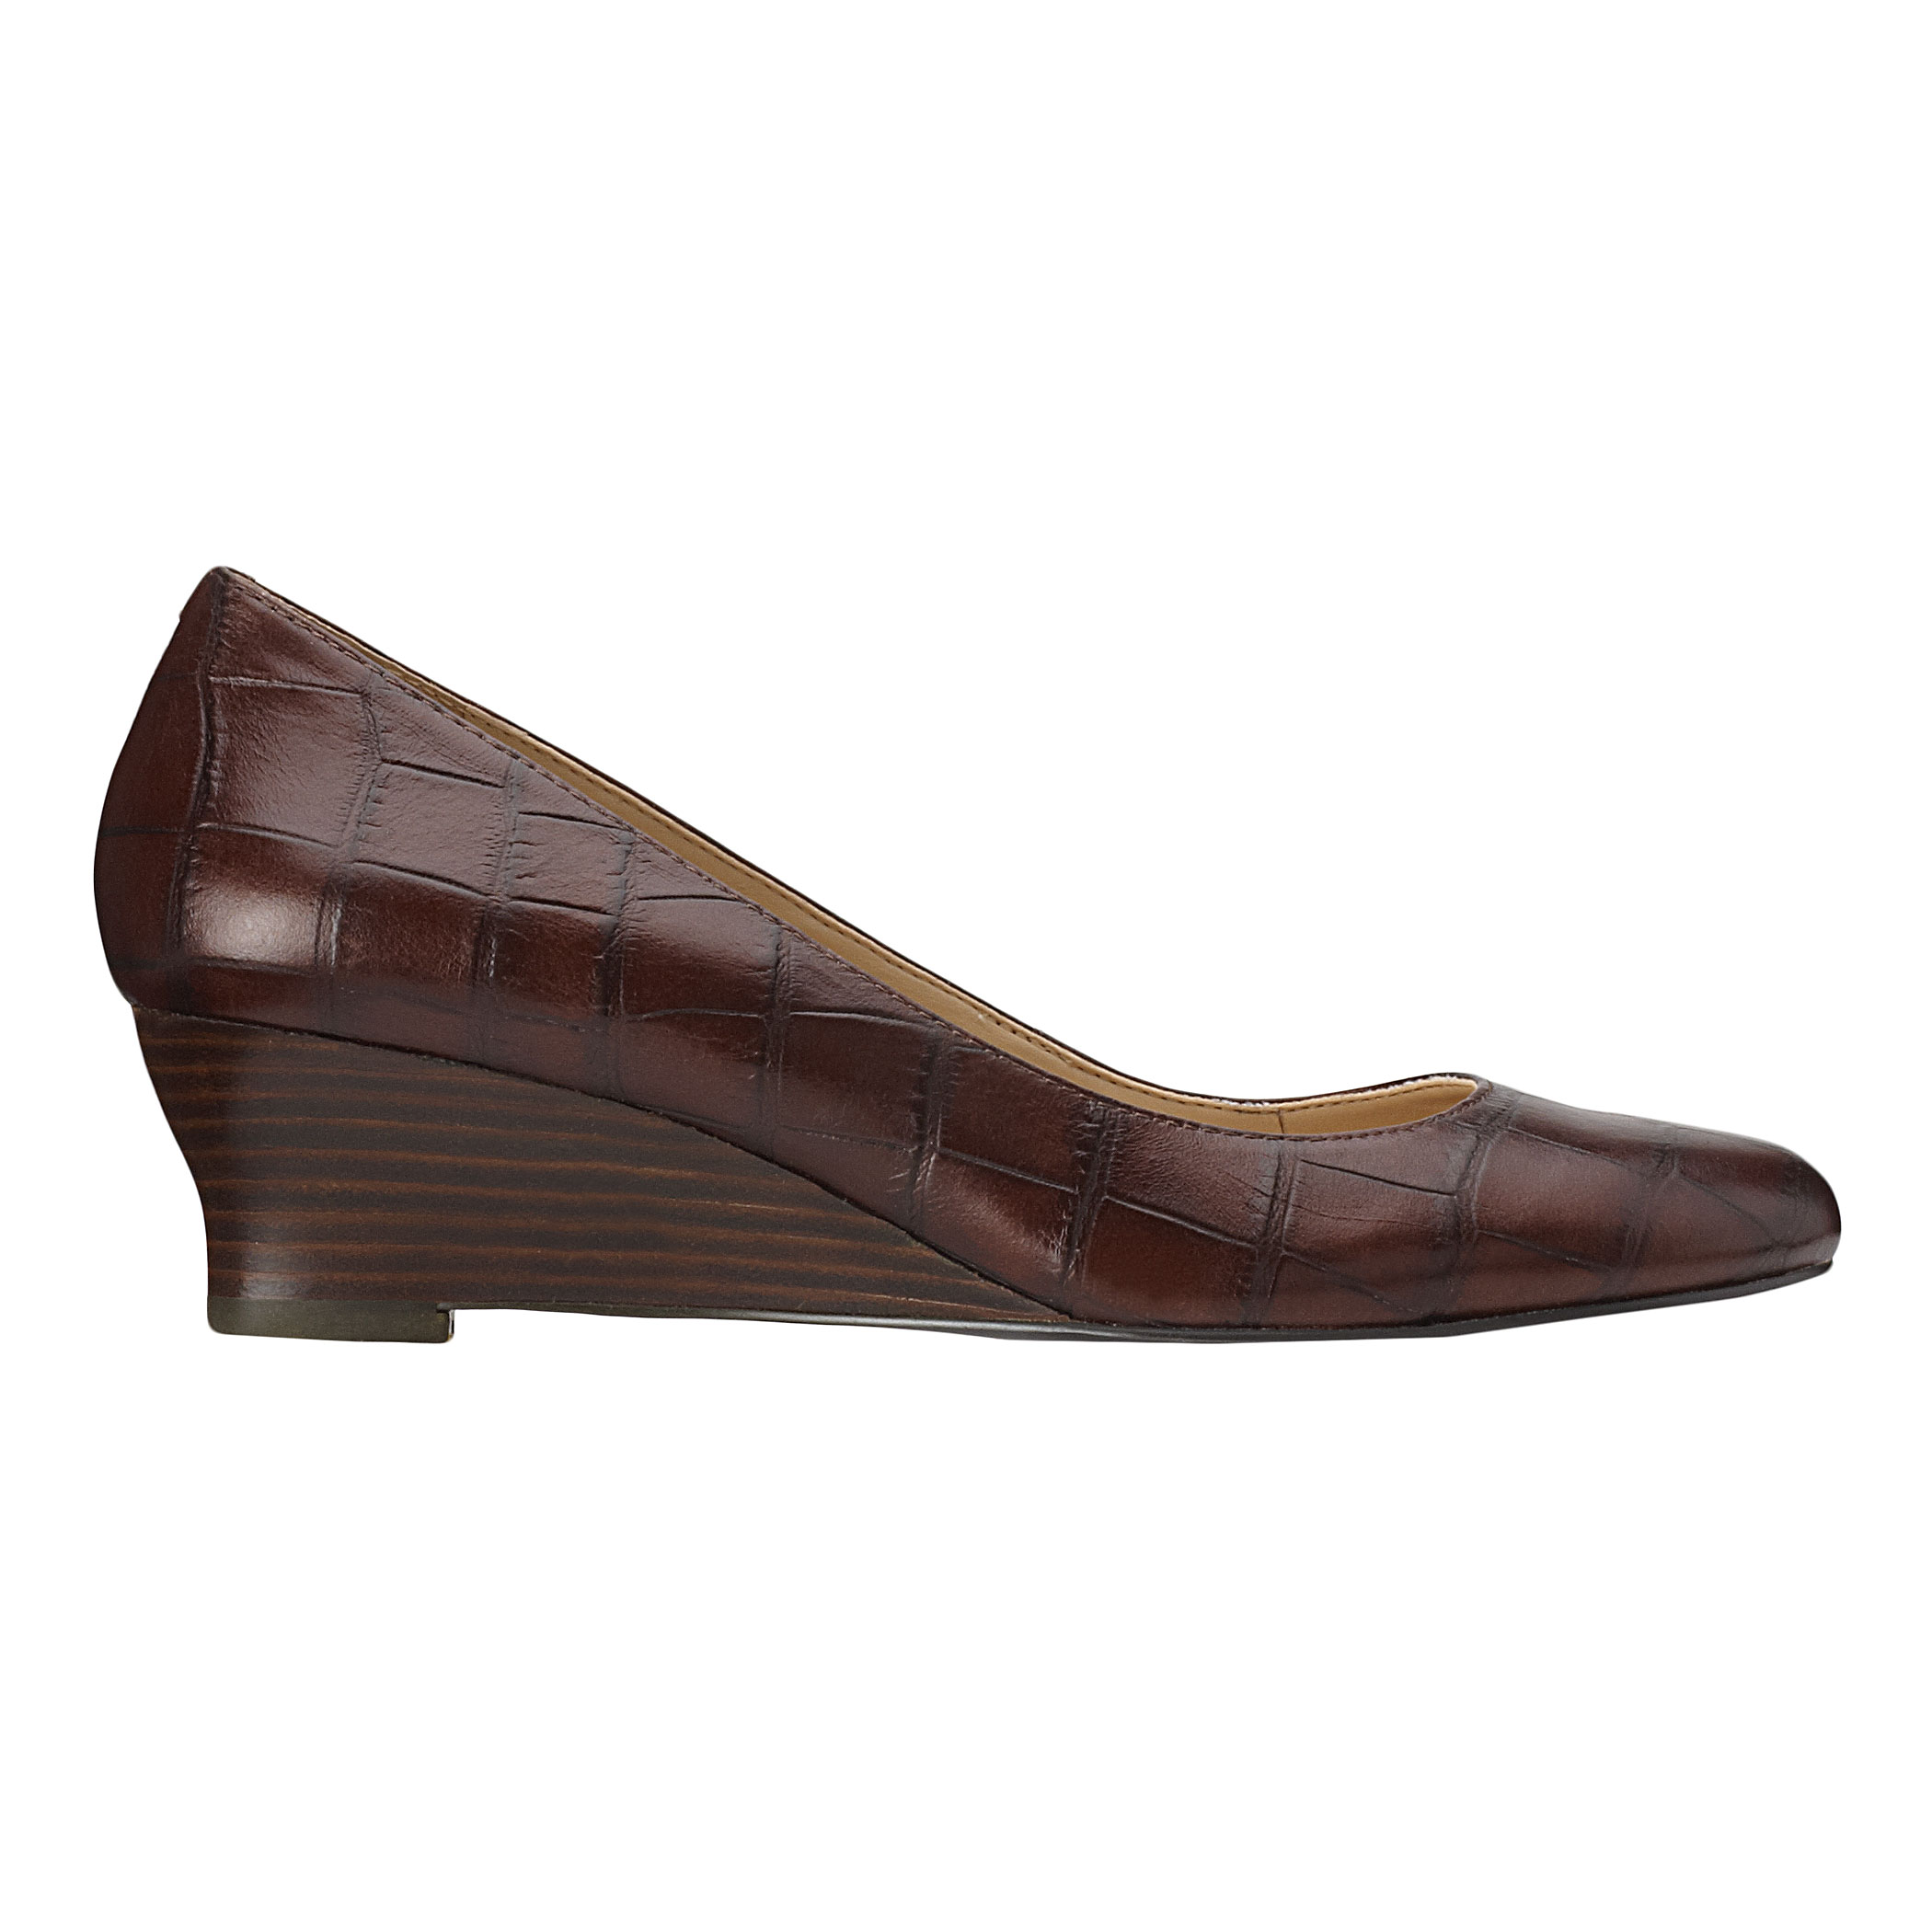 Lyst - Nine west Backtalk Midheel Wedge Pump in Brown